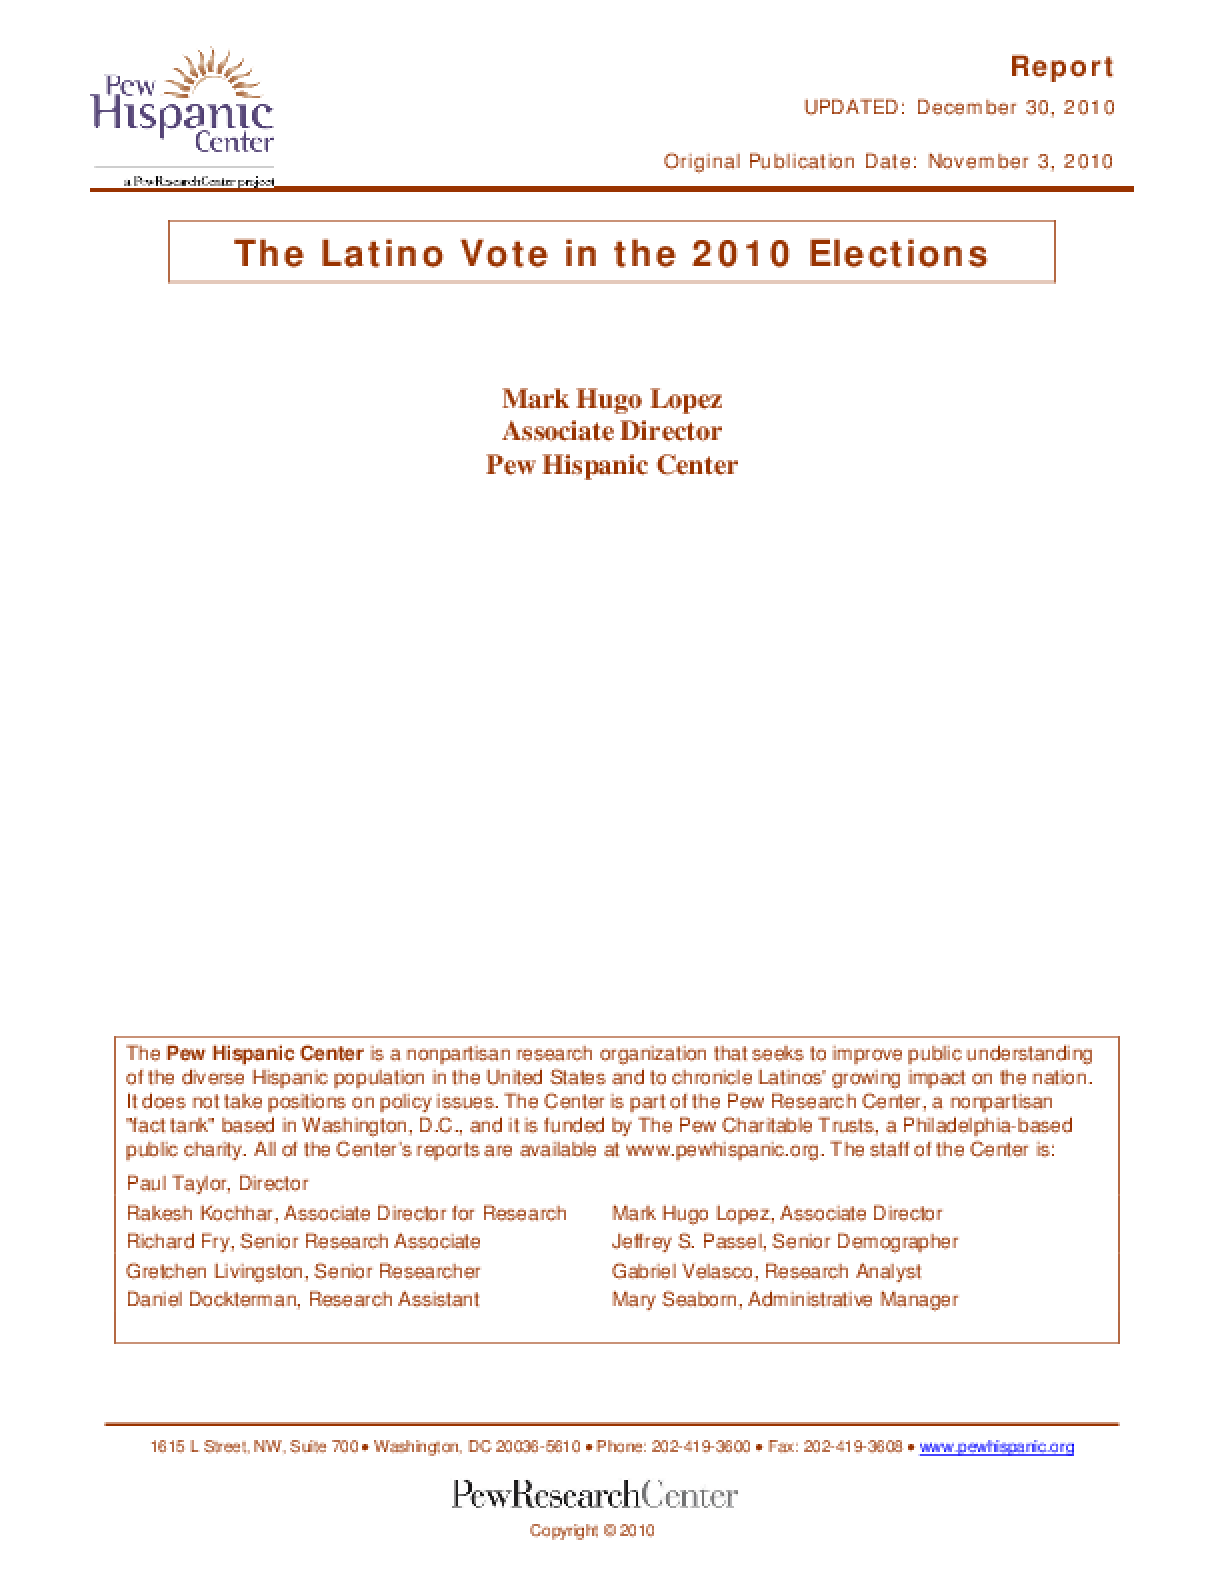 The Latino Vote in the 2010 Elections